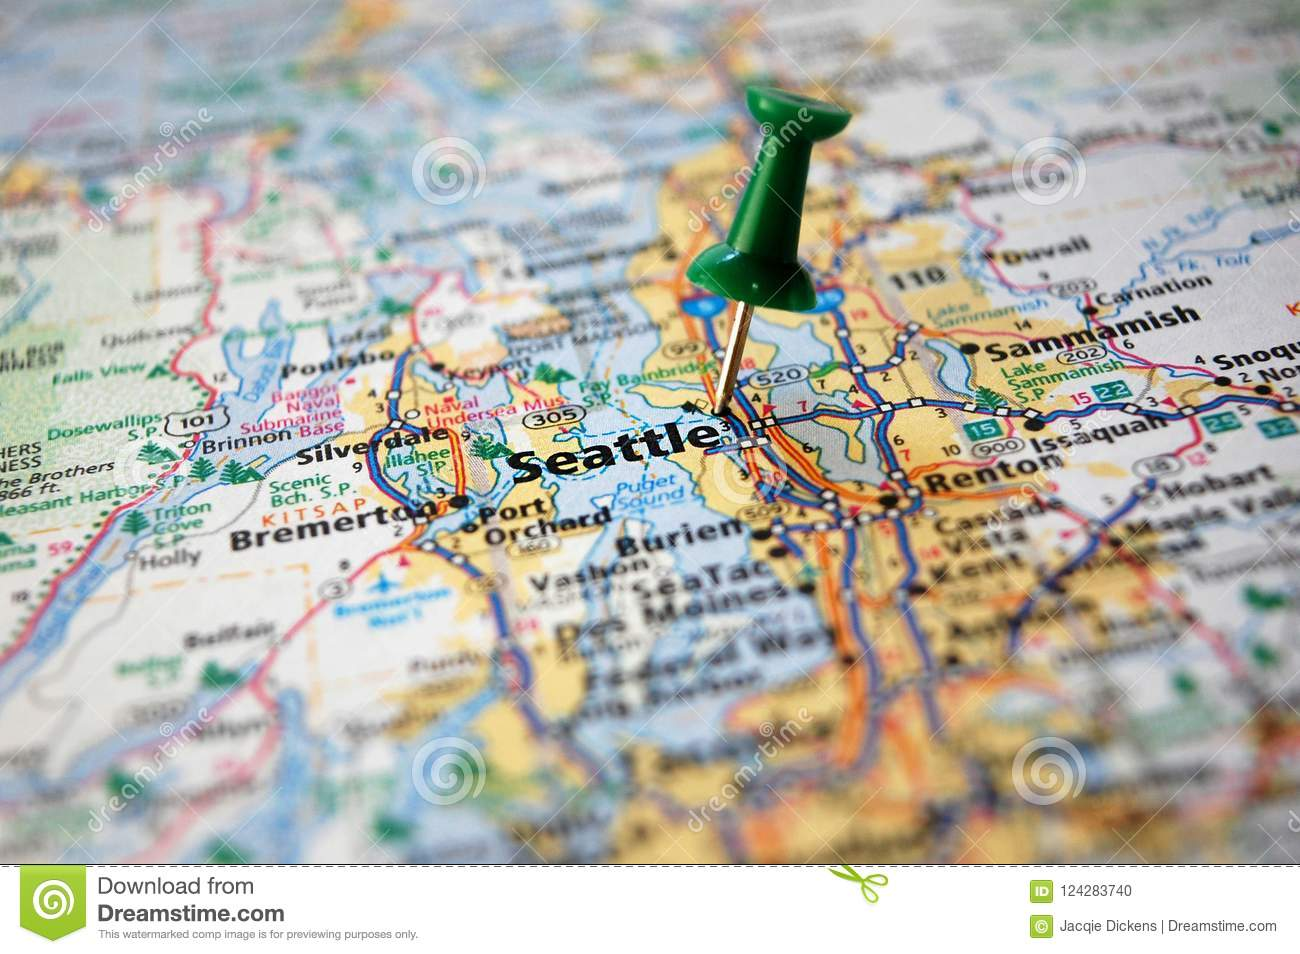 Seattle, Washington stock photo. Image of object, journey - 124283740